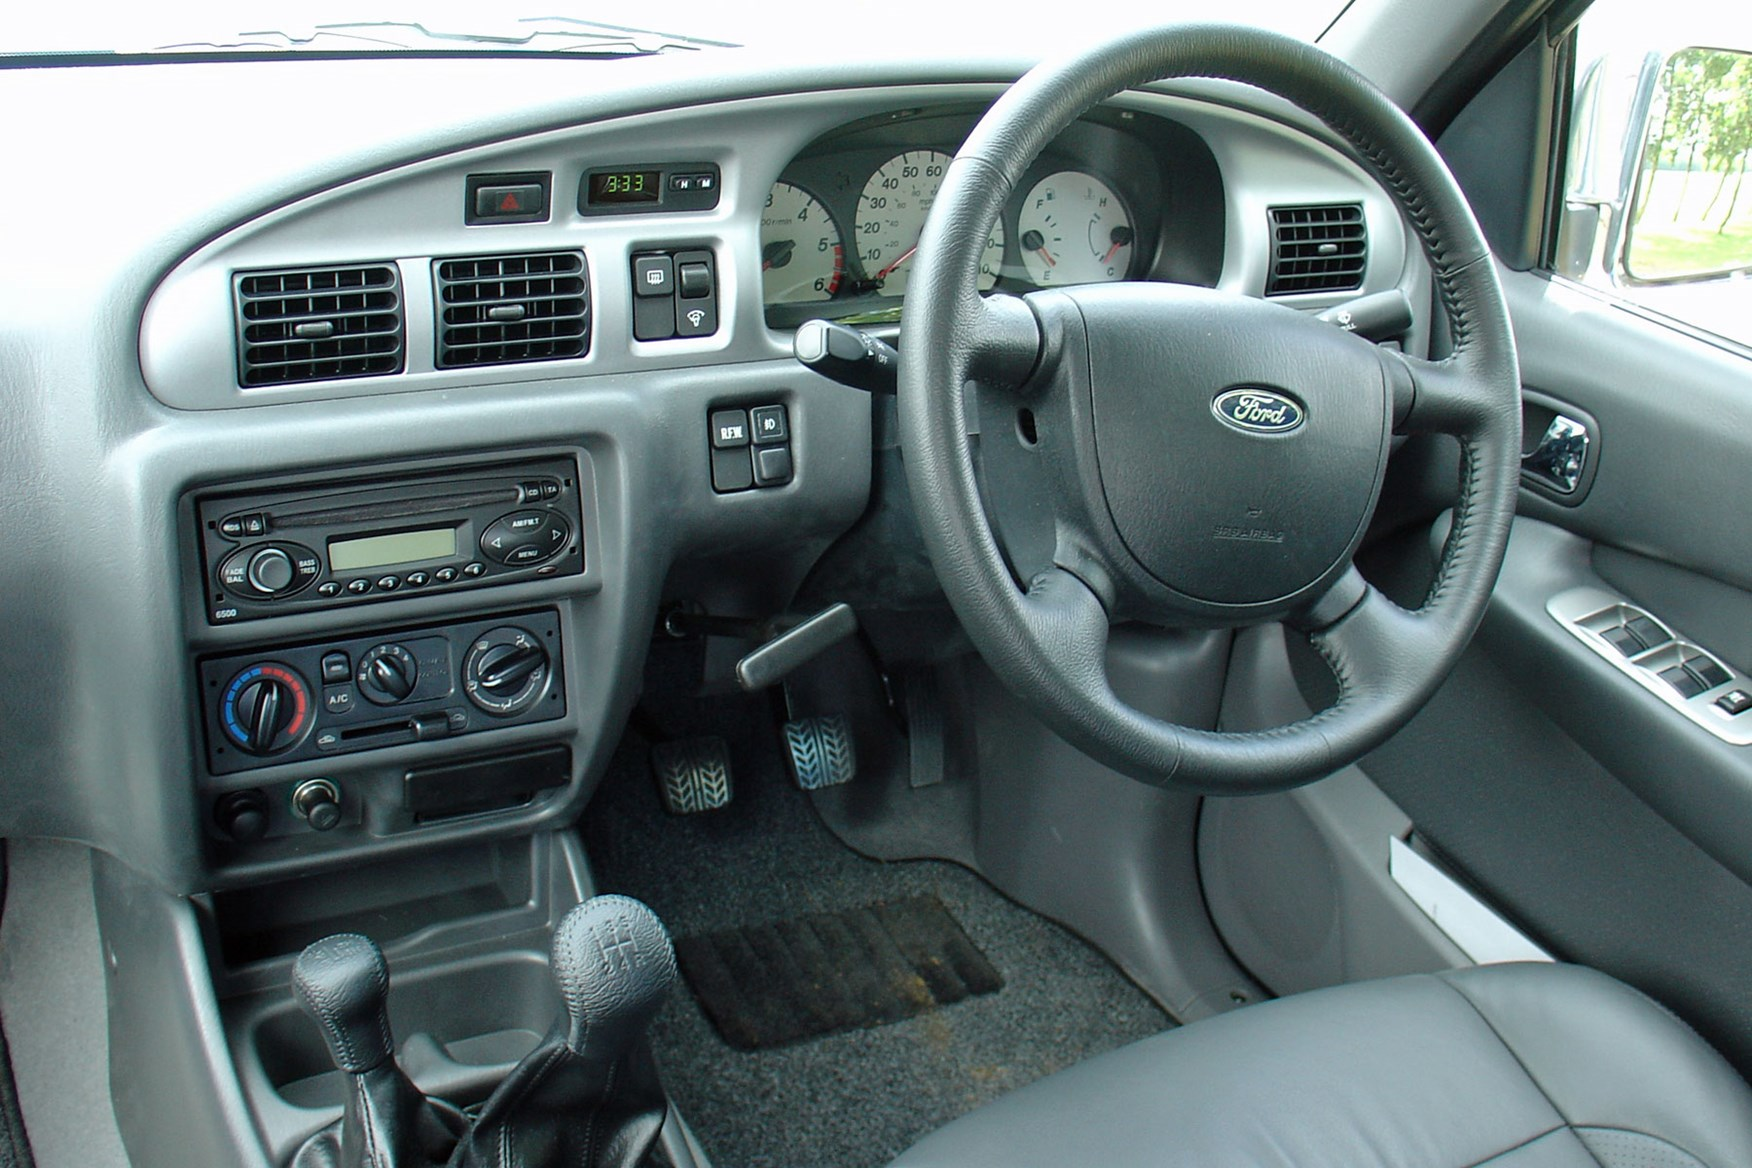 Ford ranger 1999 2006 cab interior